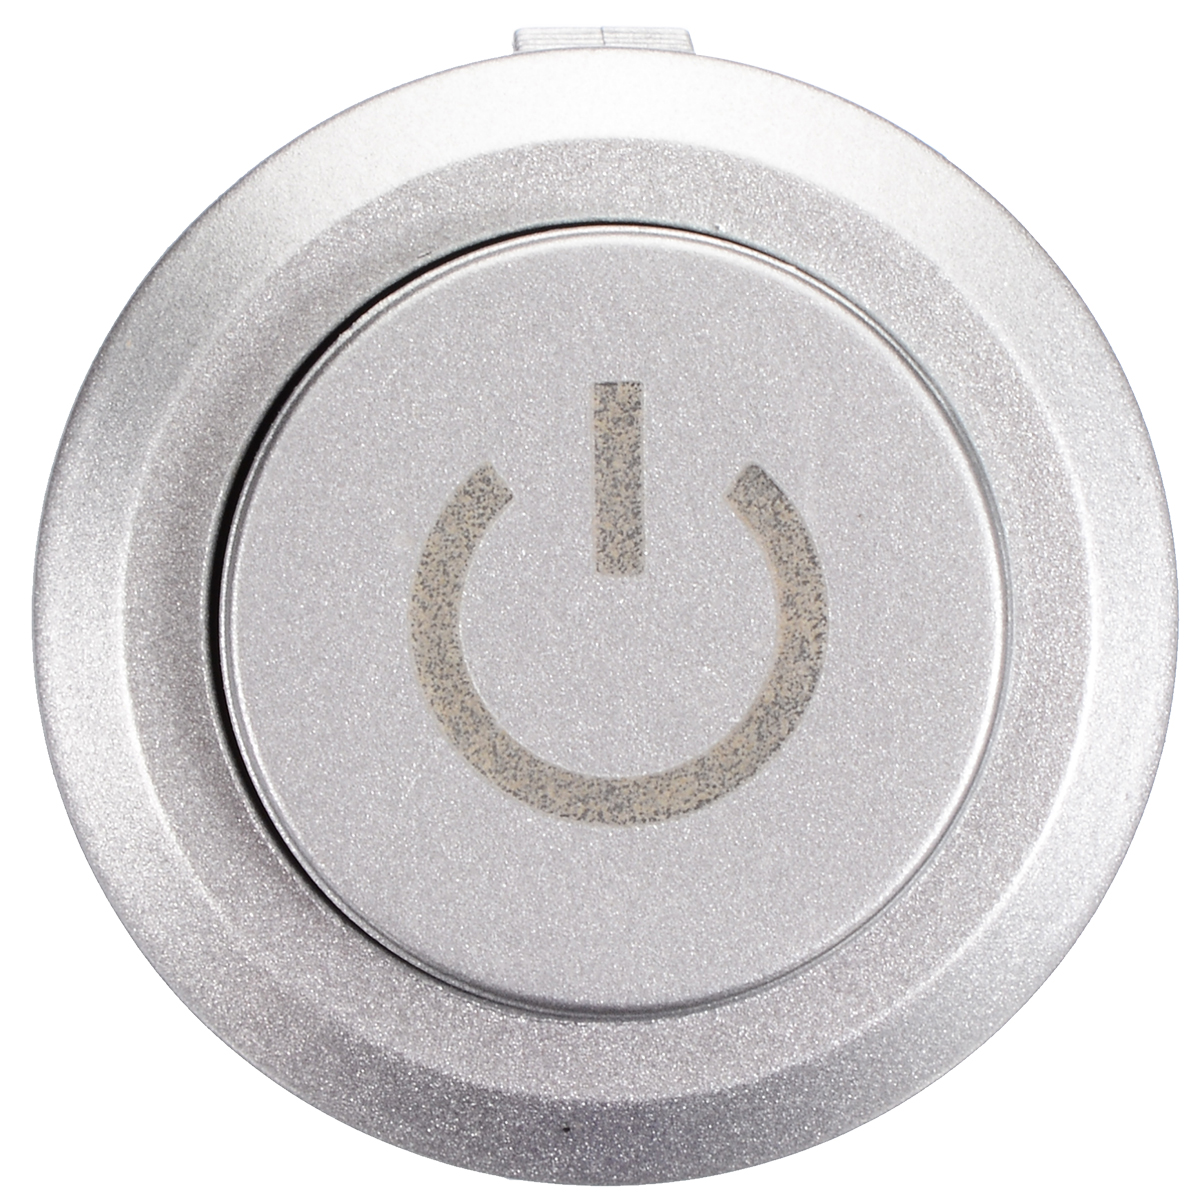 22mm 12V LED Momentary Latching Brass Nickel Plate 1NO 1NC Metal Push Button Switch with Power Symbol